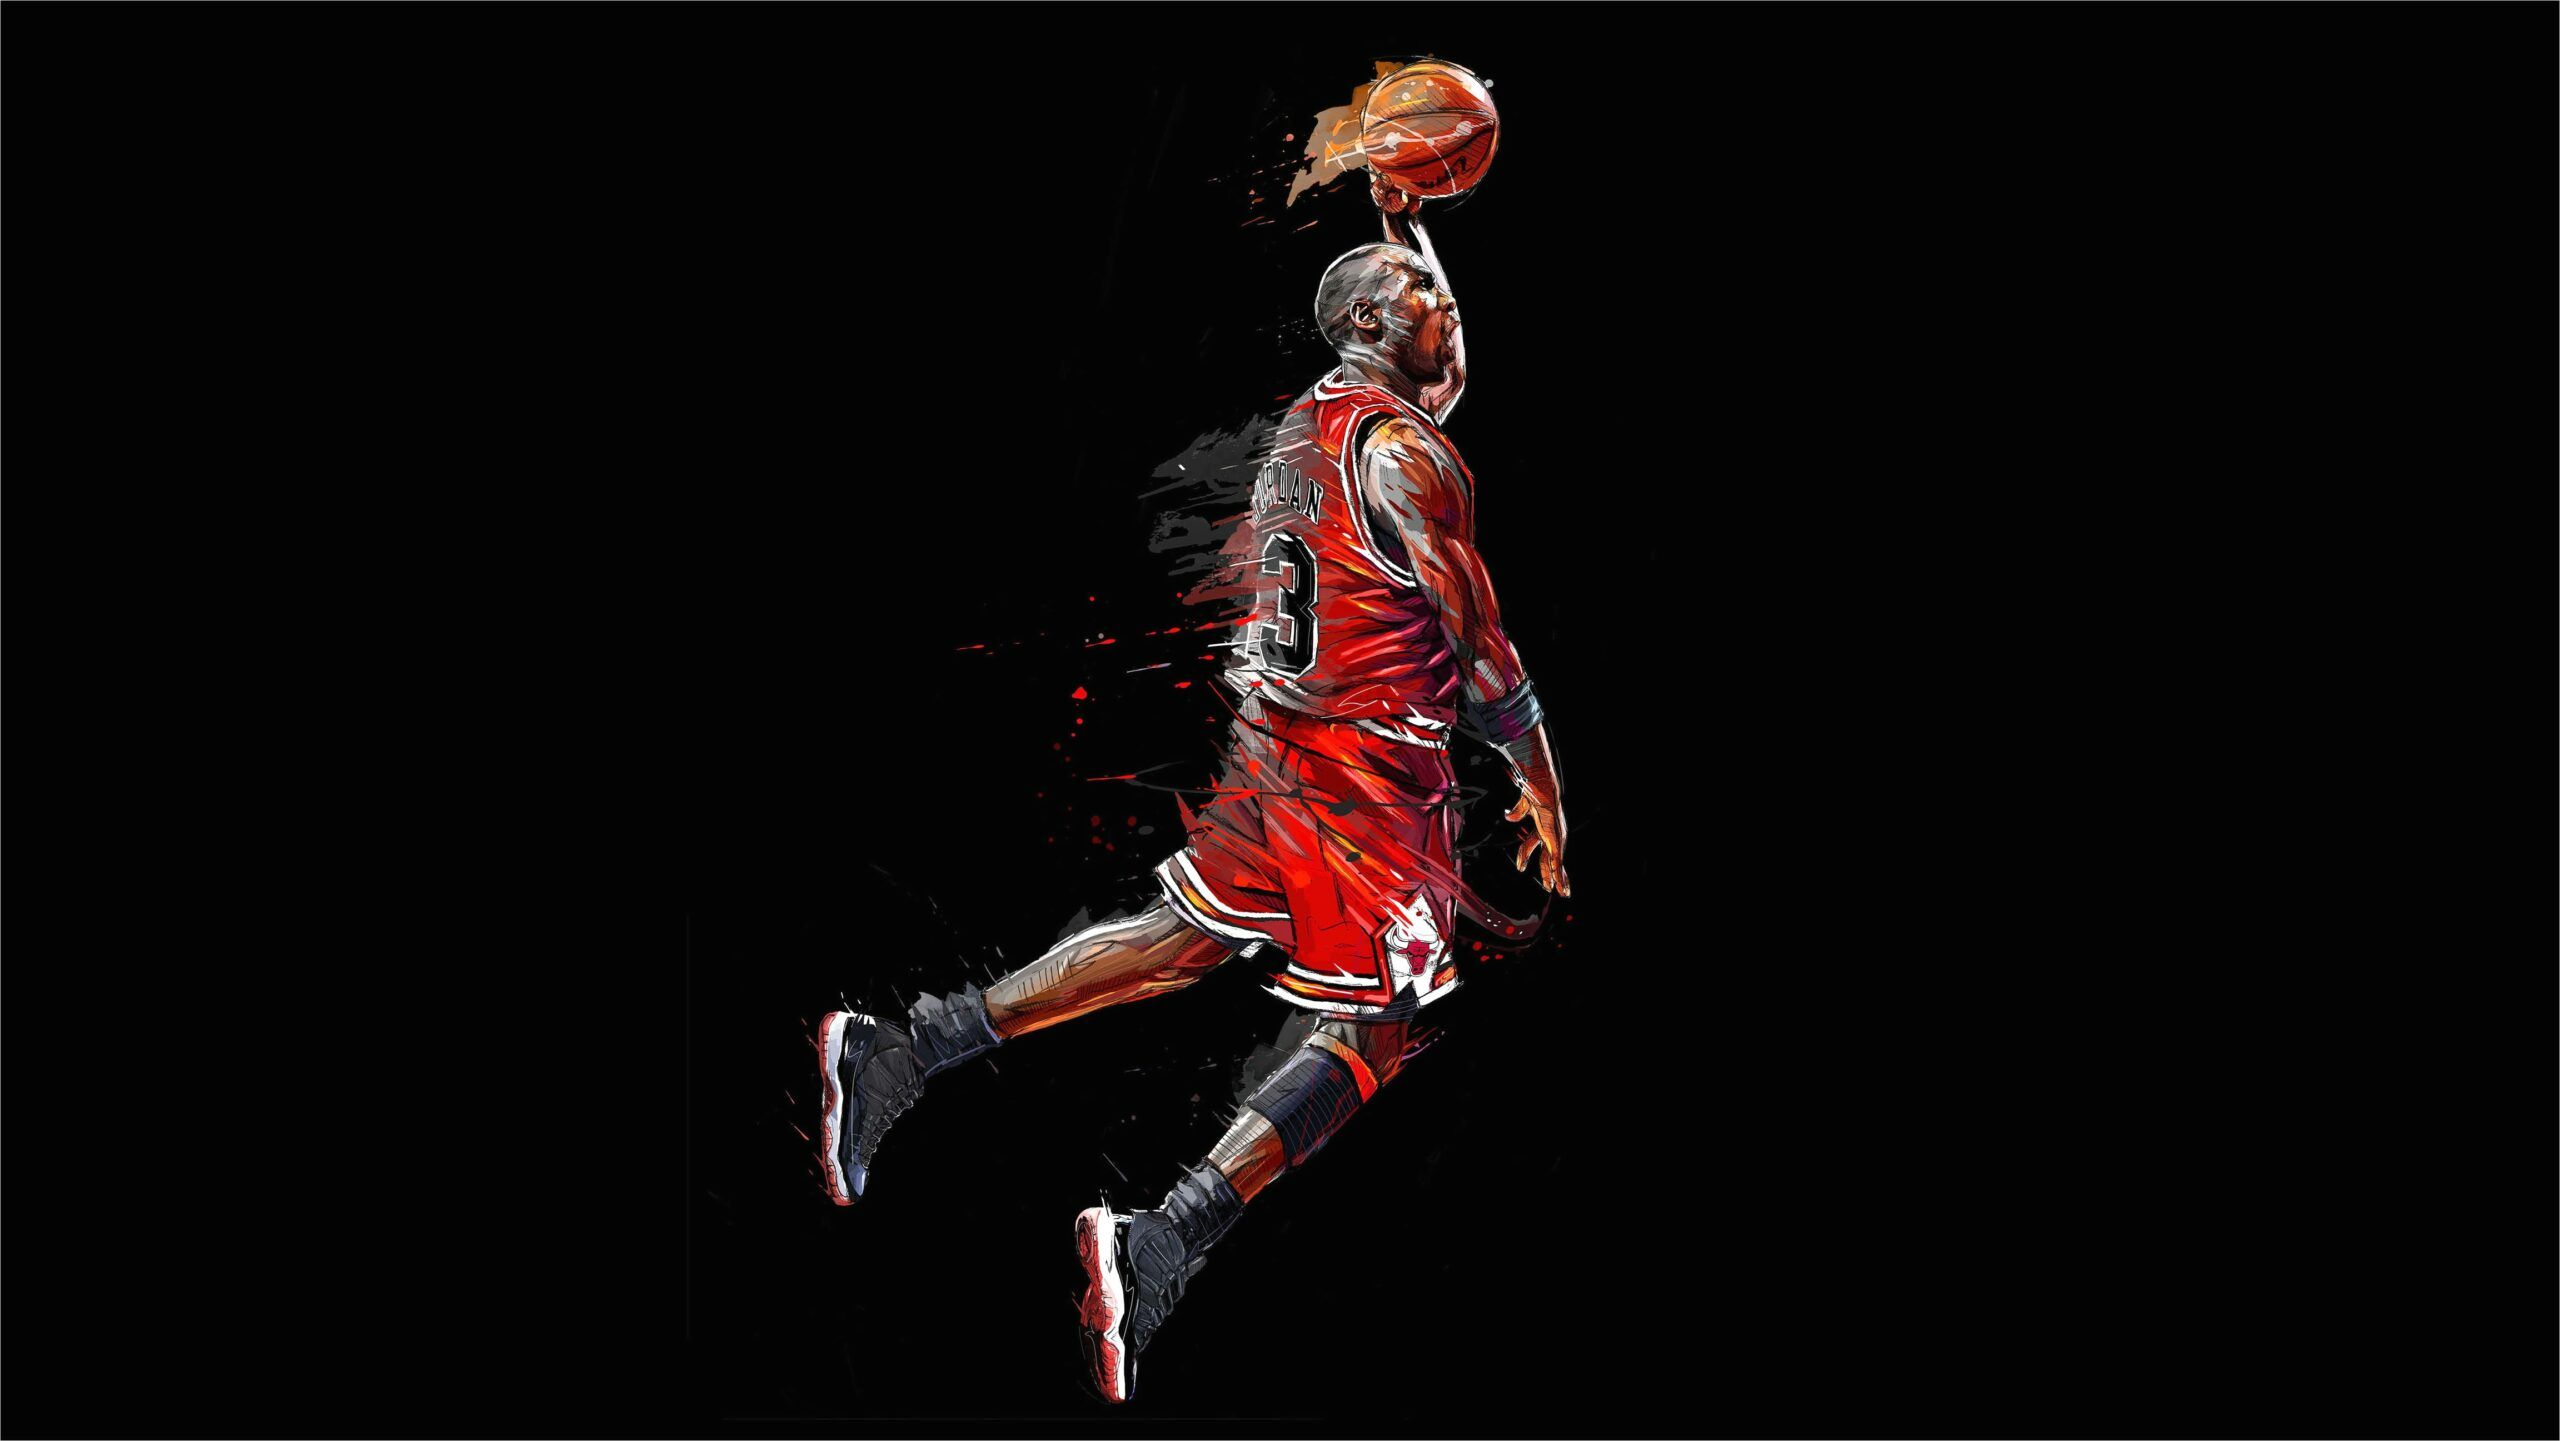 4k Michael Jordan Wallpaper In 2020 Michael Jordan Basketball Players Nba Wallpapers